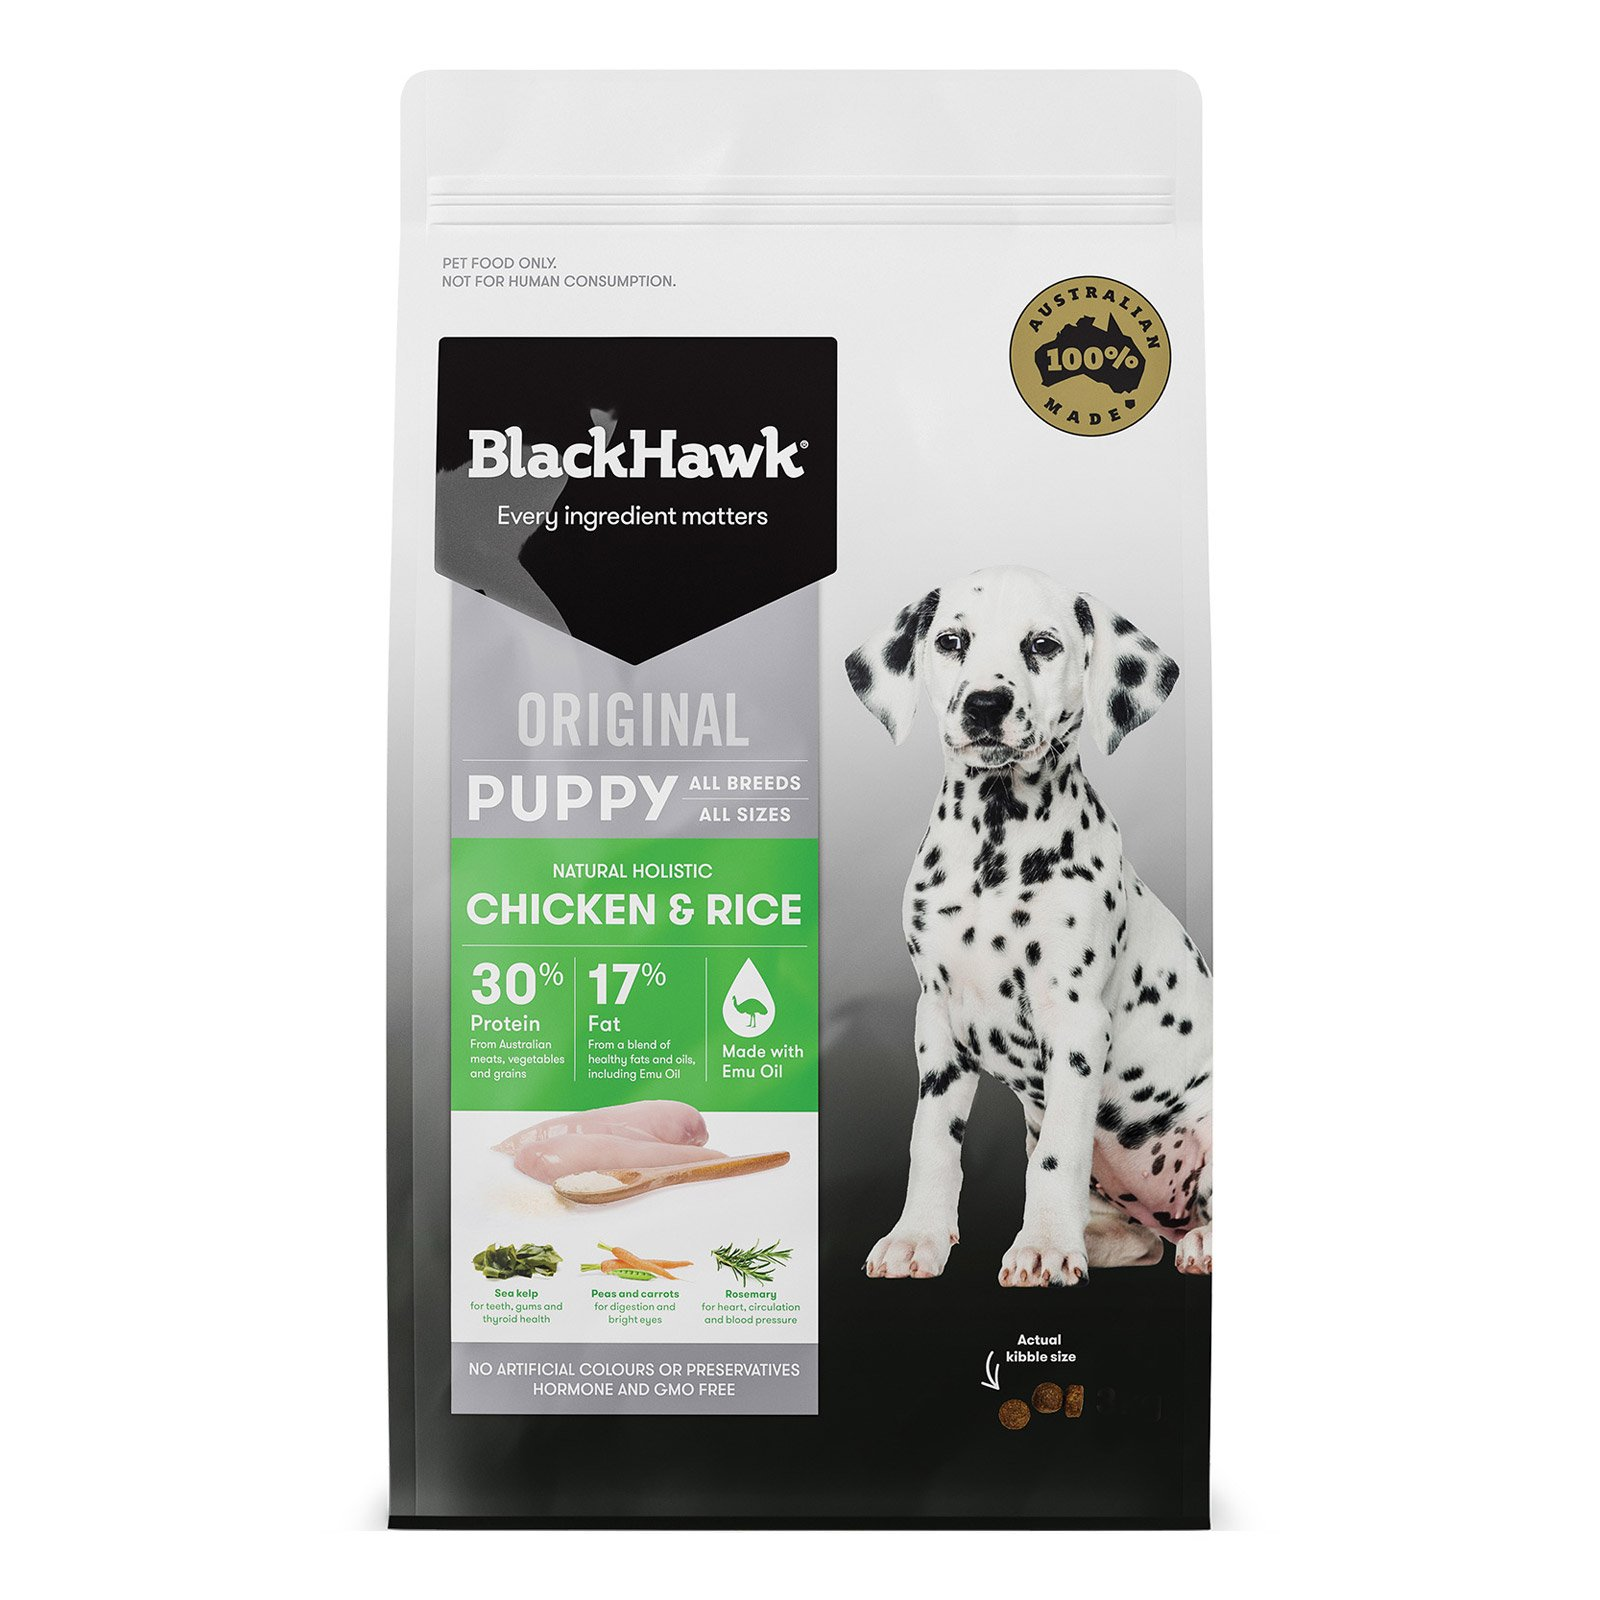 Black Hawk Puppy Chicken & Rice Food